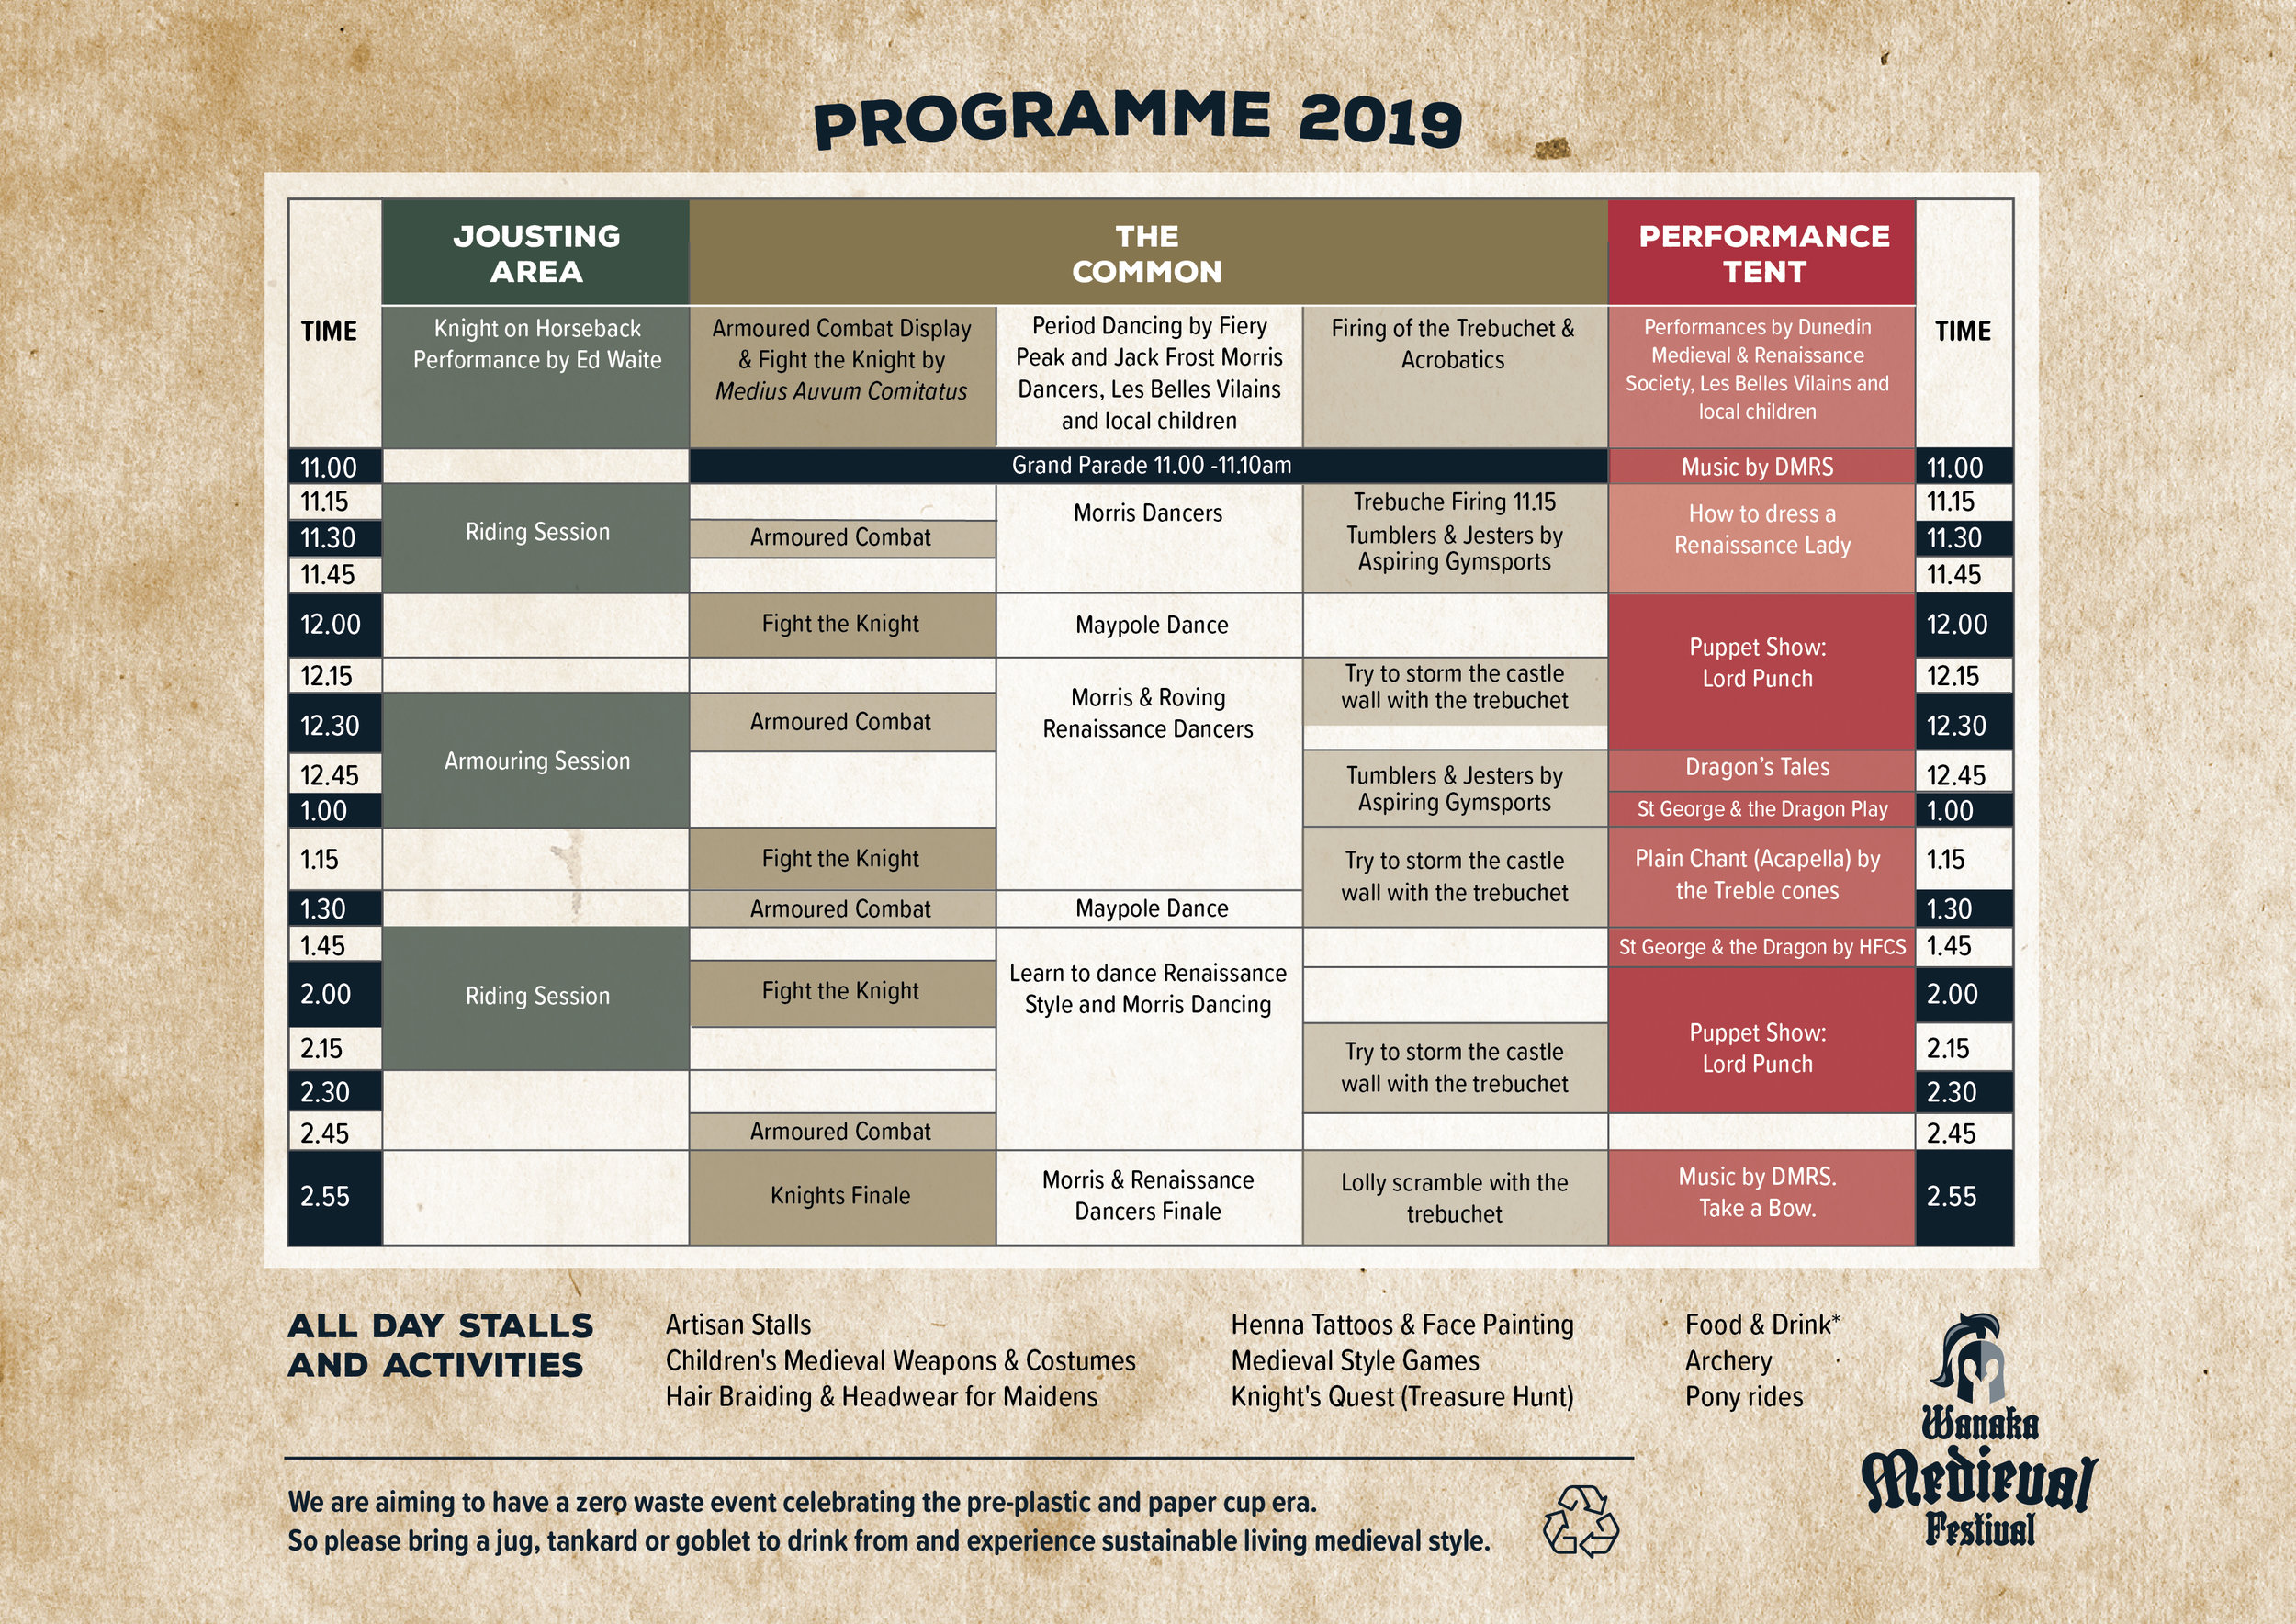 To download a copy of the programme please see link below.